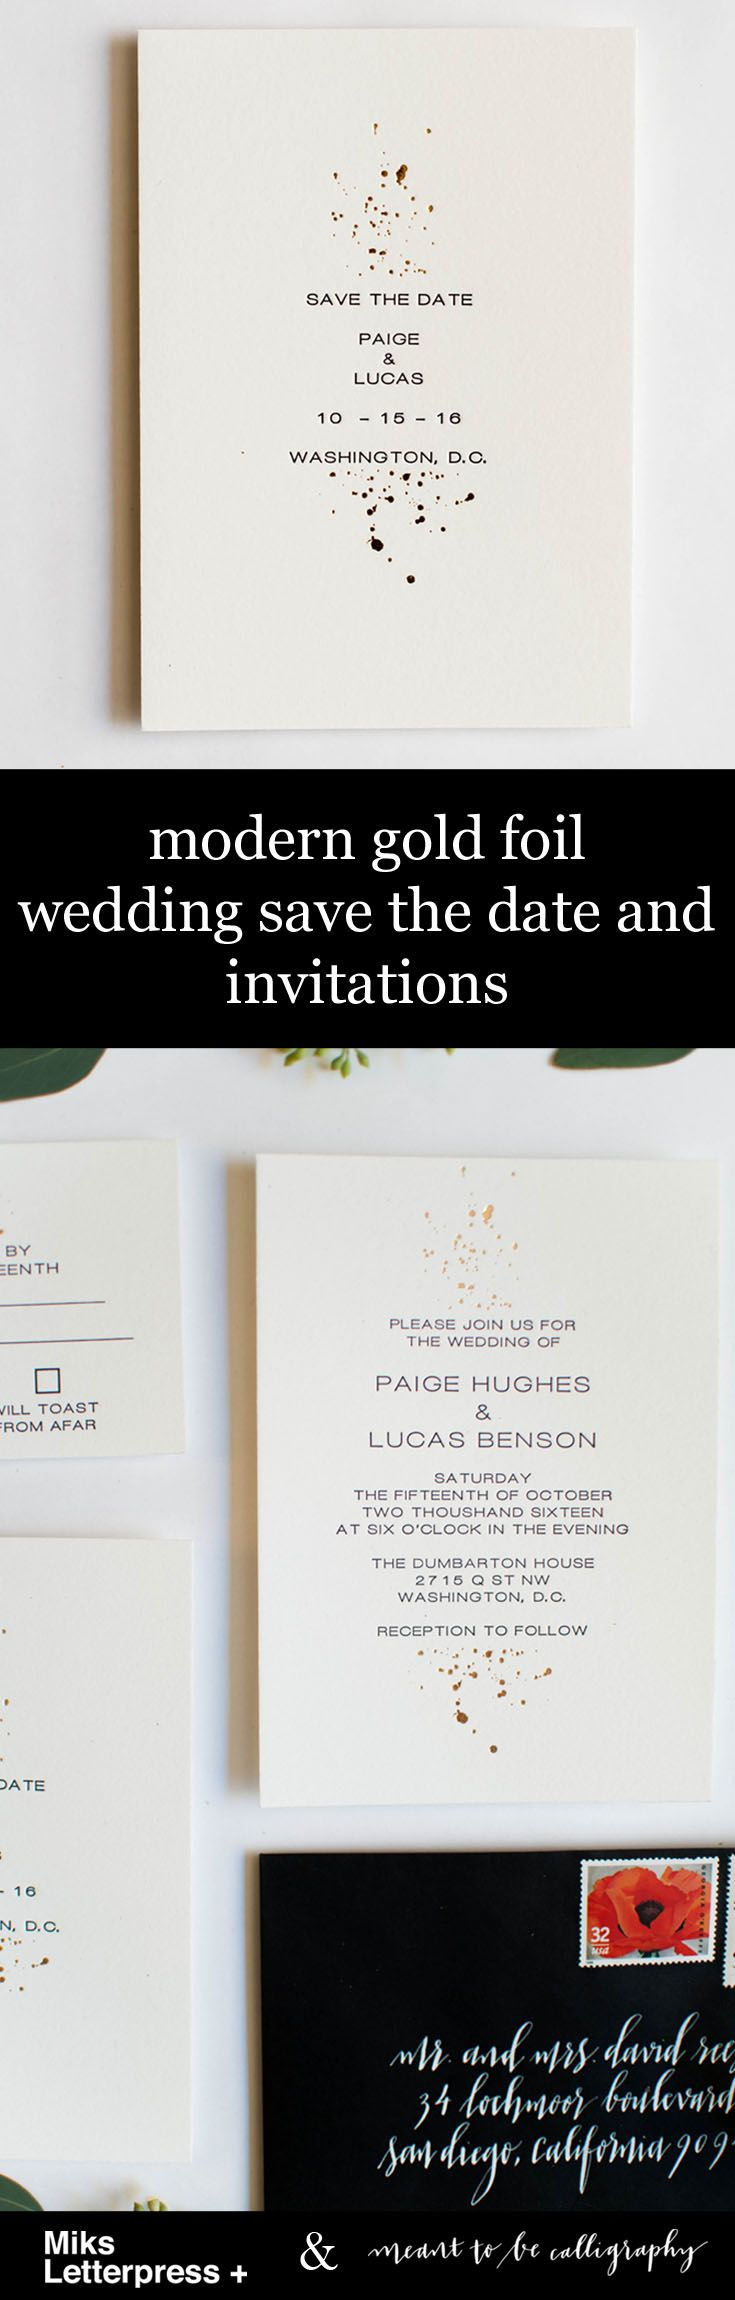 This Save the Date and Invitation set is a great minimal and simple wedding invitation design. The gold foil ink splatter is modern and elegant and brings a touch of luxury. The letterpress wording makes the invitations that much more elegant. Calligraphy by Meant to be DC and Invitations by Miks Letterpress +